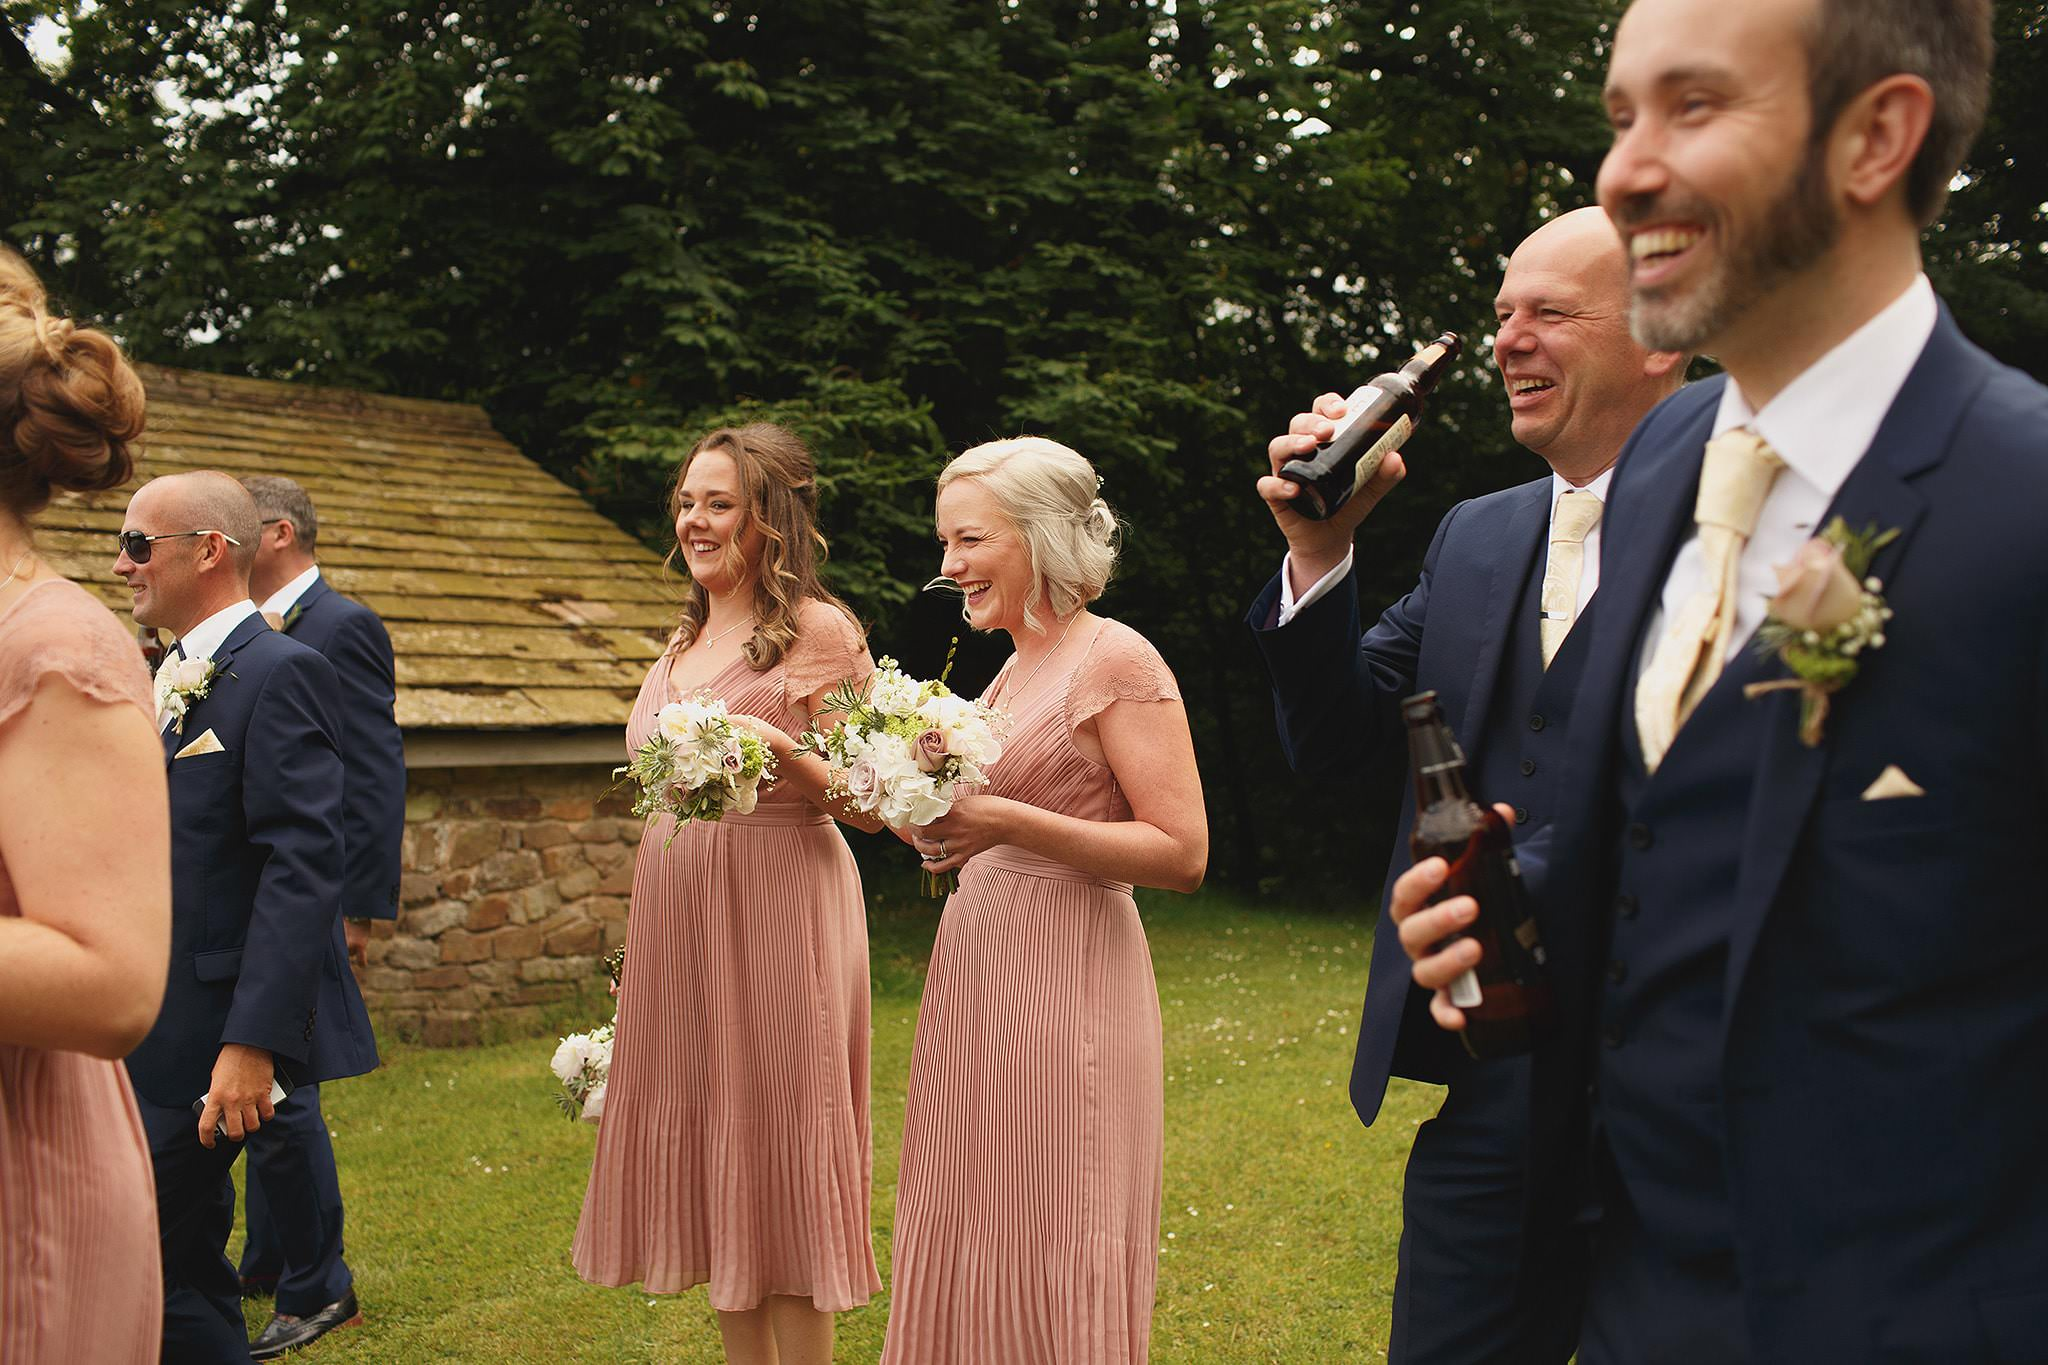 Wedding ideas by Browsholme Hall Wedding Photographer Toni Darcy.